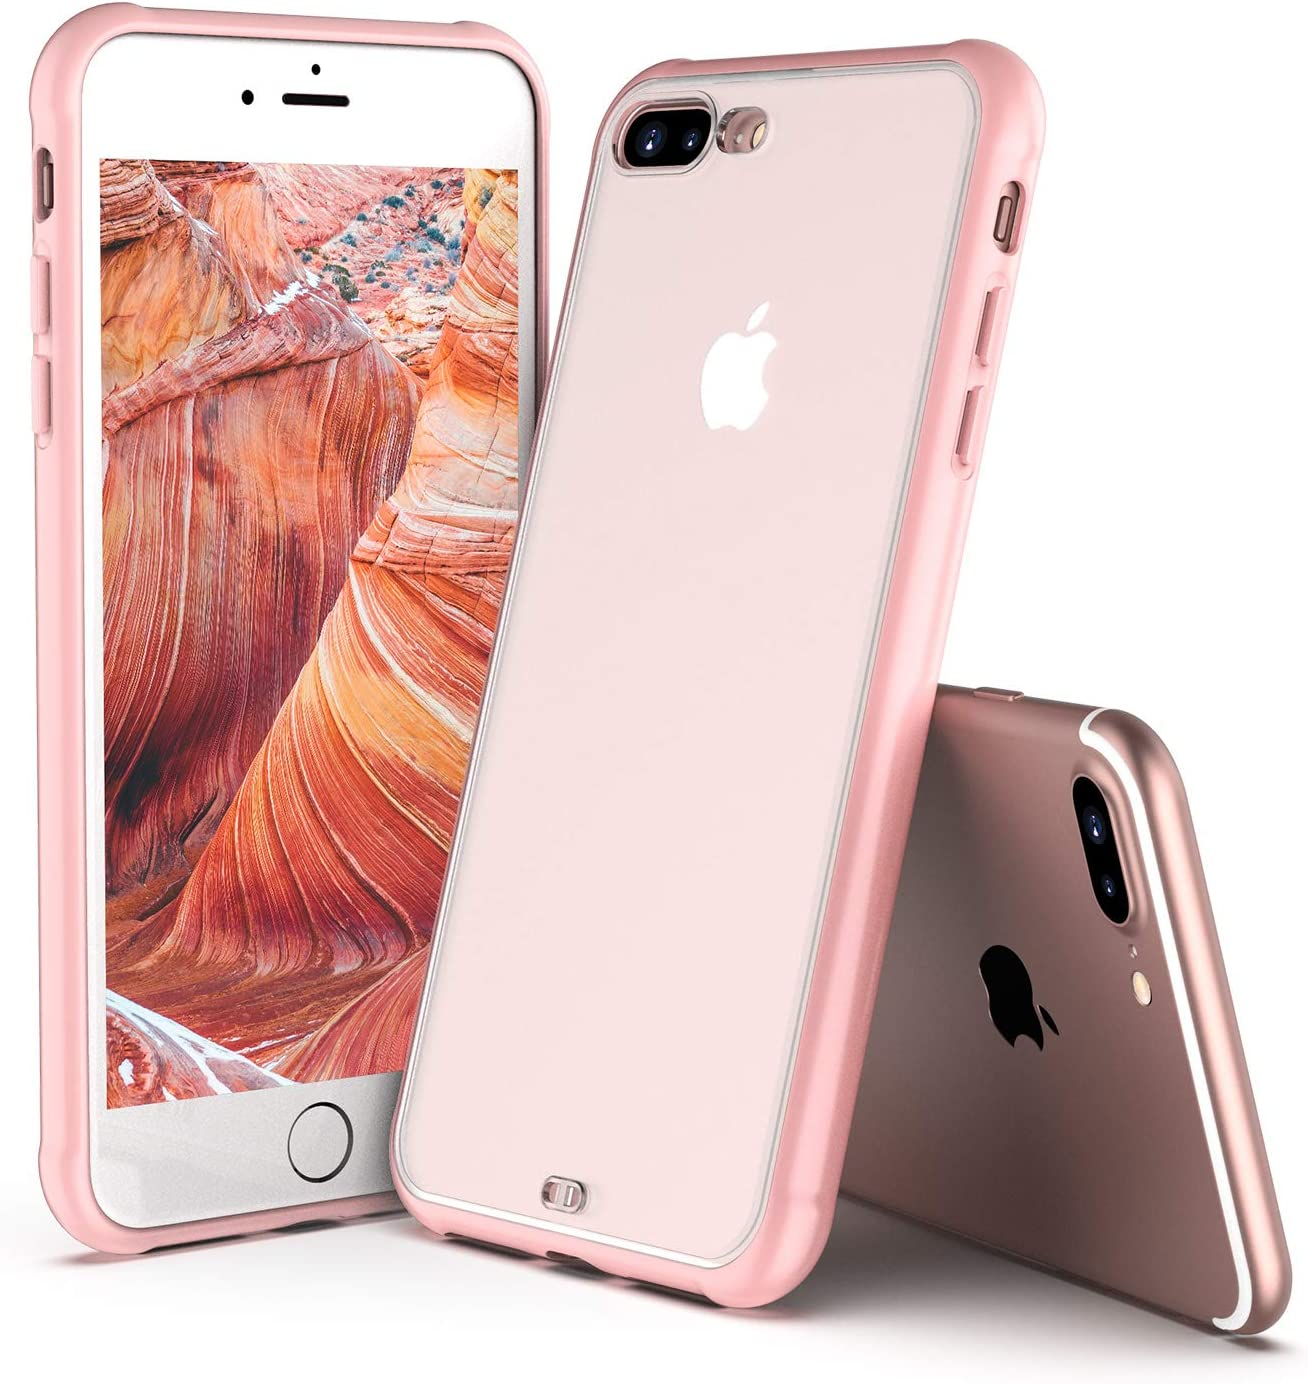 ORIbox Case for iPhone 7 Plus/8 Plus, Translucent Matte case with Soft Red Edges, Shockproof and Anti-Drop Protection Case Designed for iPhone 7 Plus/8 Plus, Rose Glod